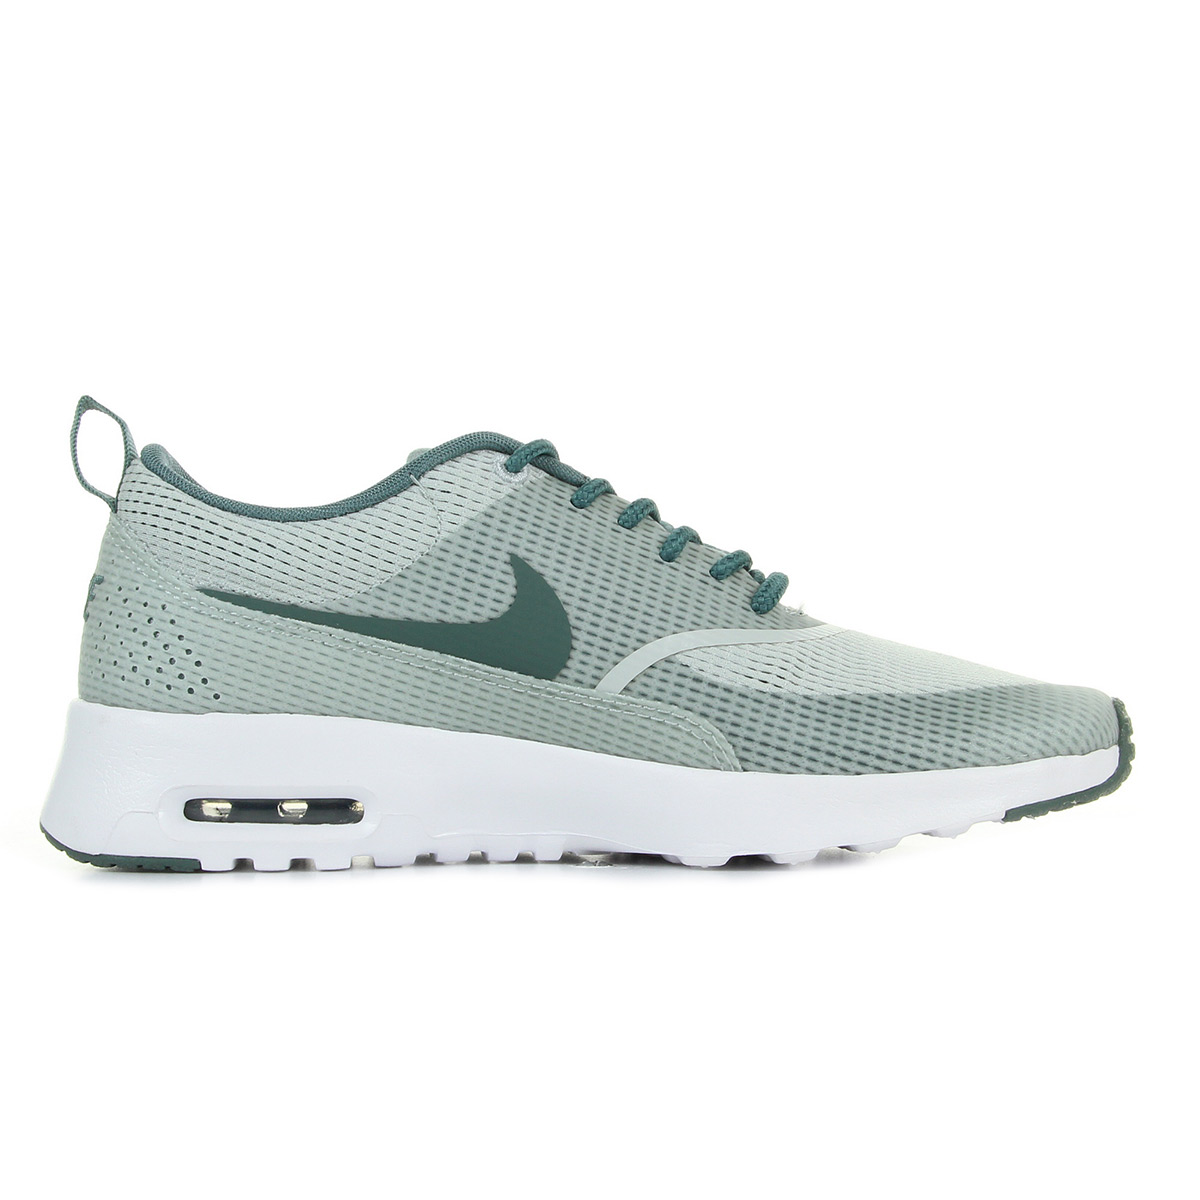 Nike Air Max Thea Txt 819639002, Baskets mode femme